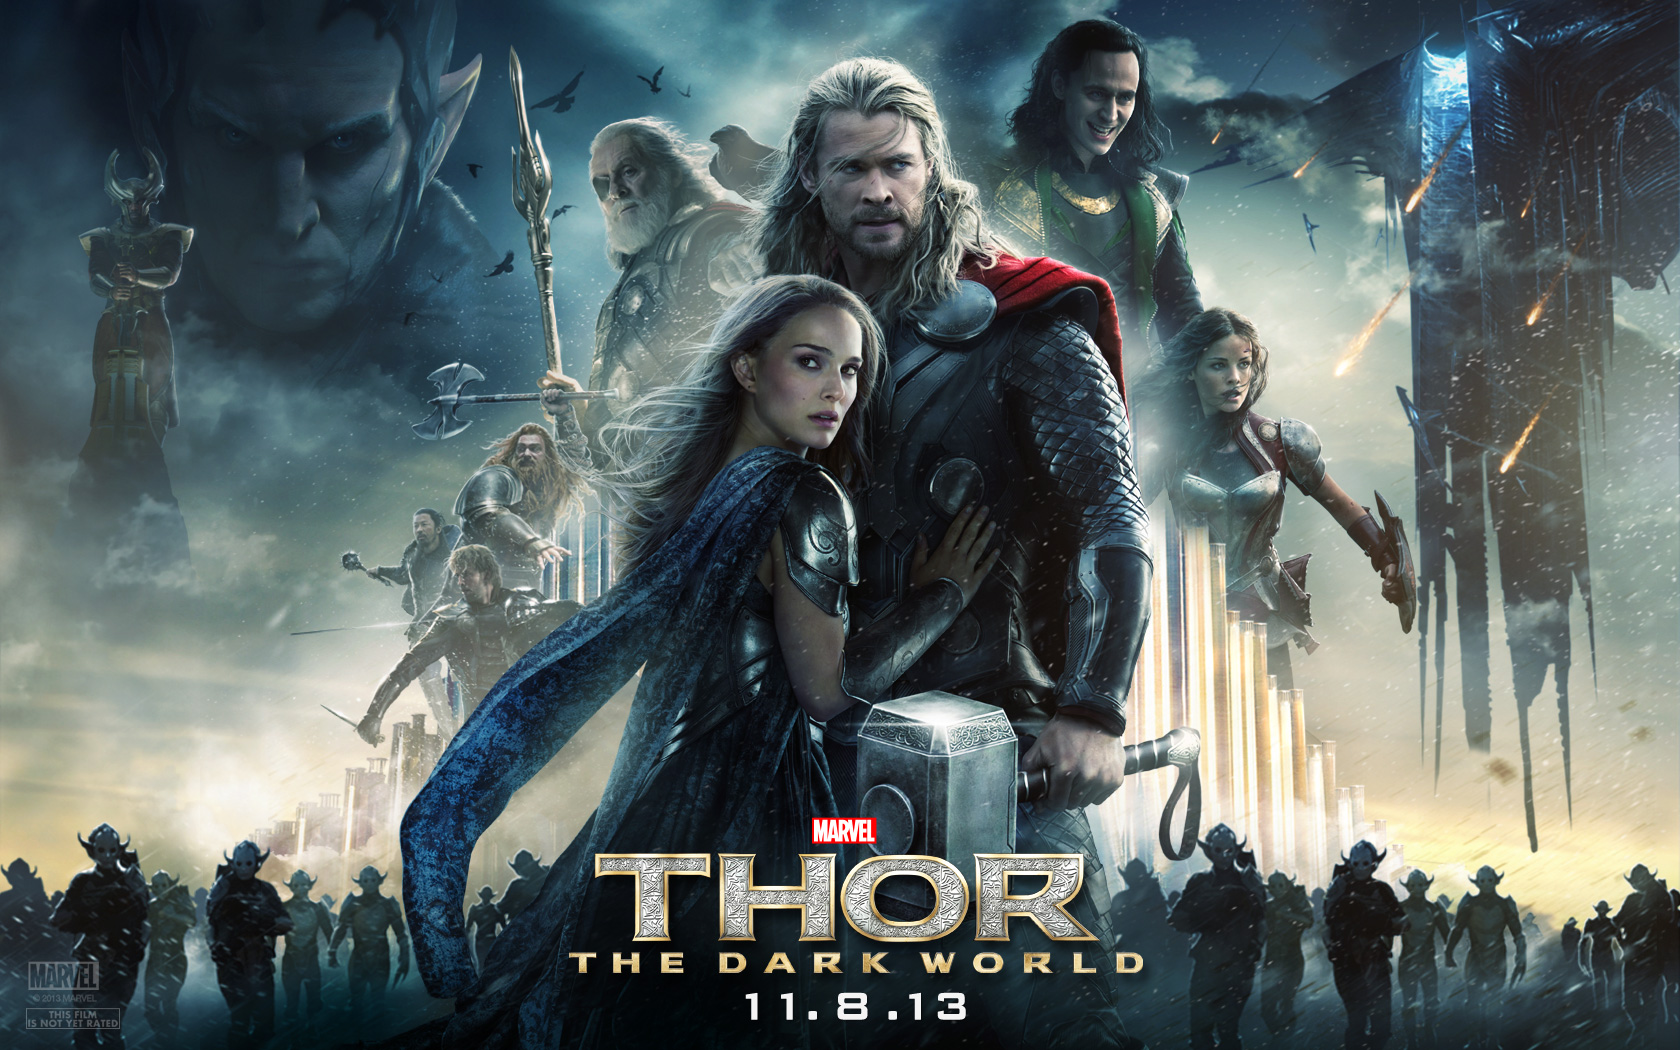 Friday Film Review No.11 – Thor: The Dark World (2013)